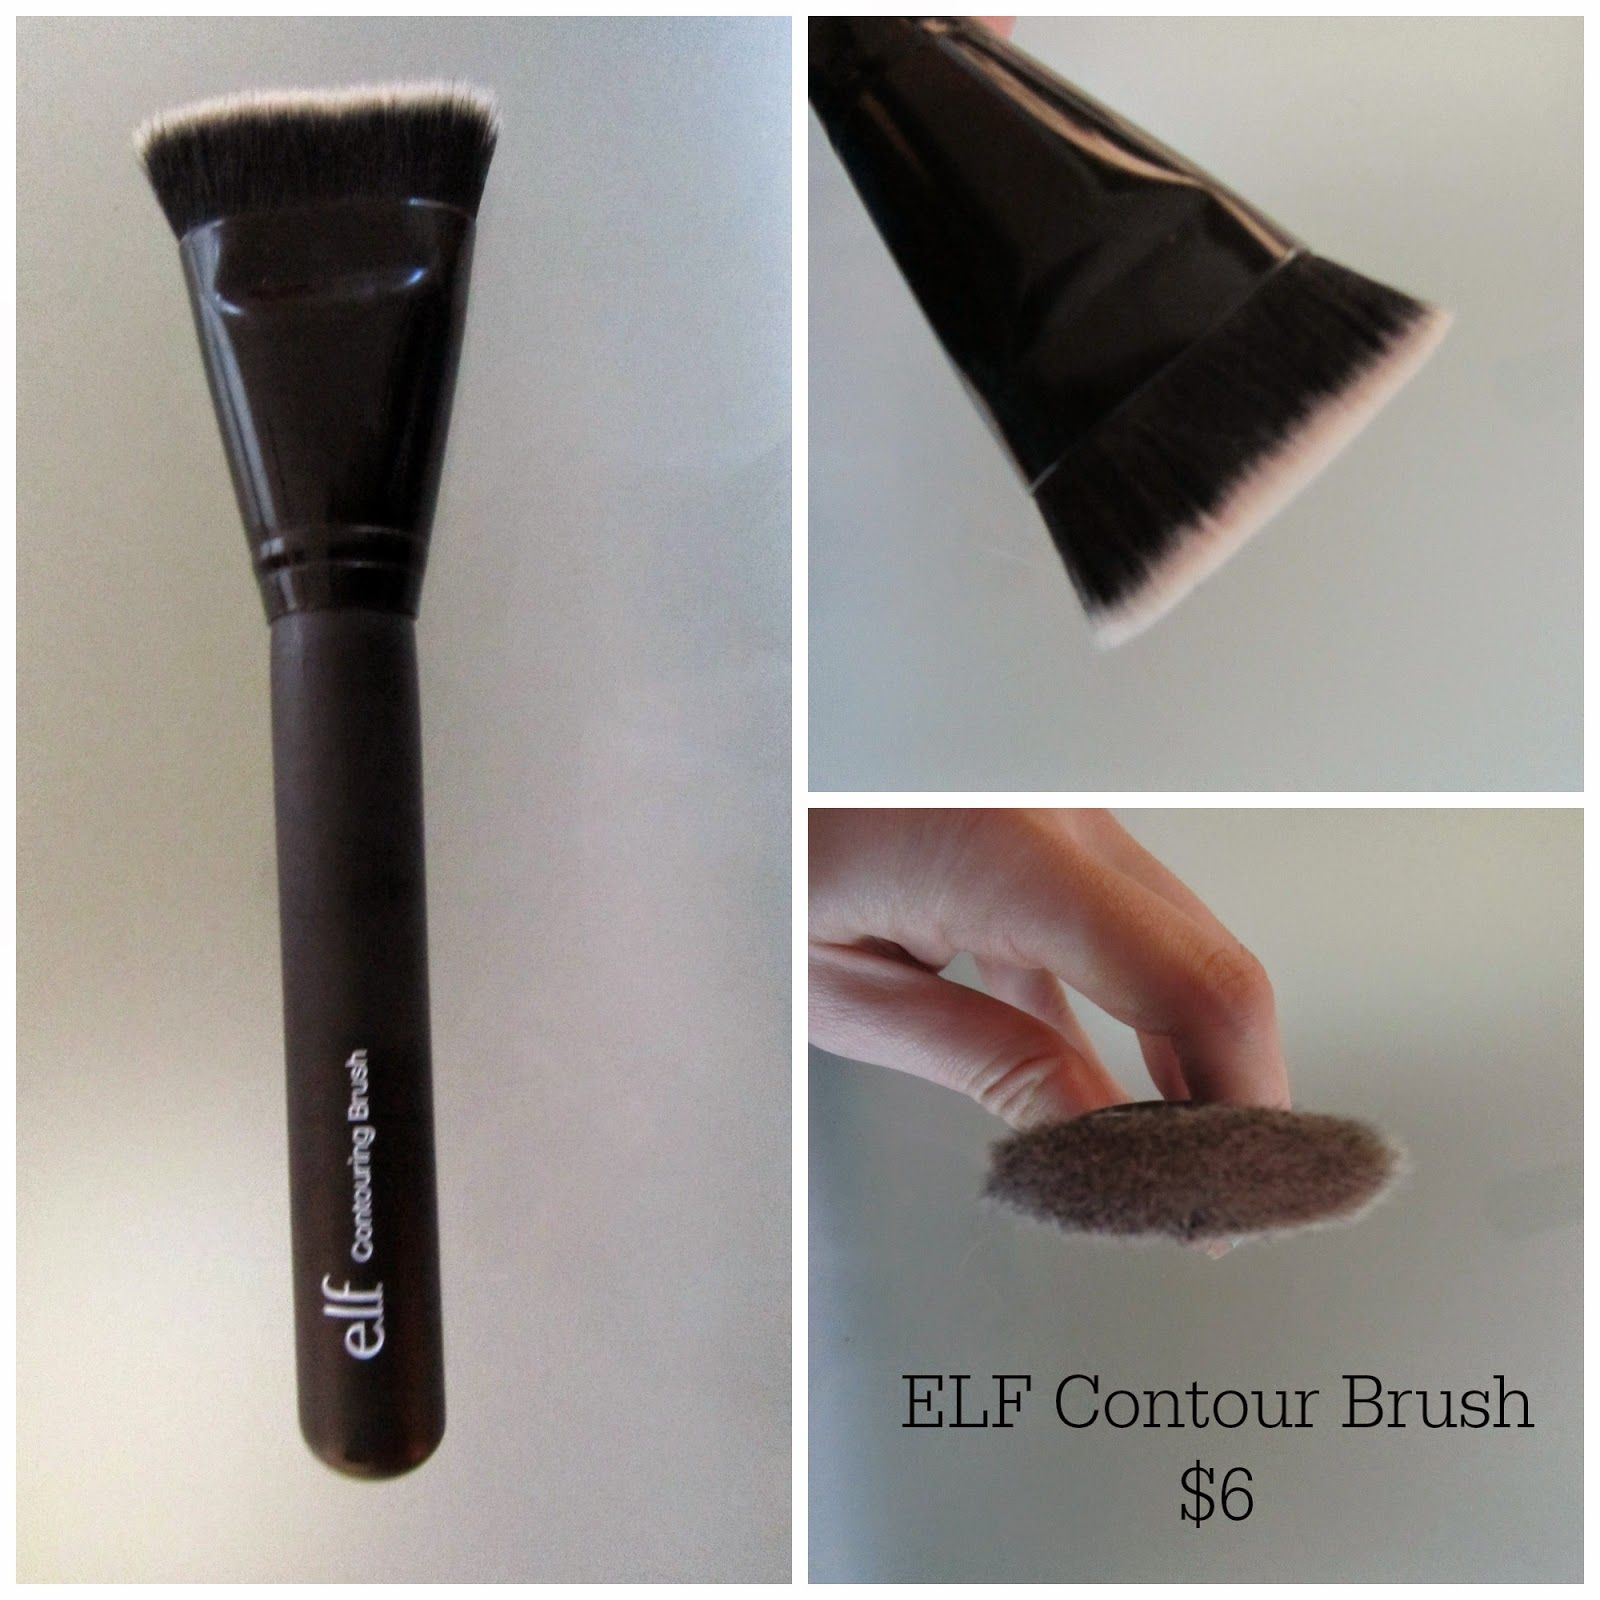 Contouring Brush by e.l.f. #3